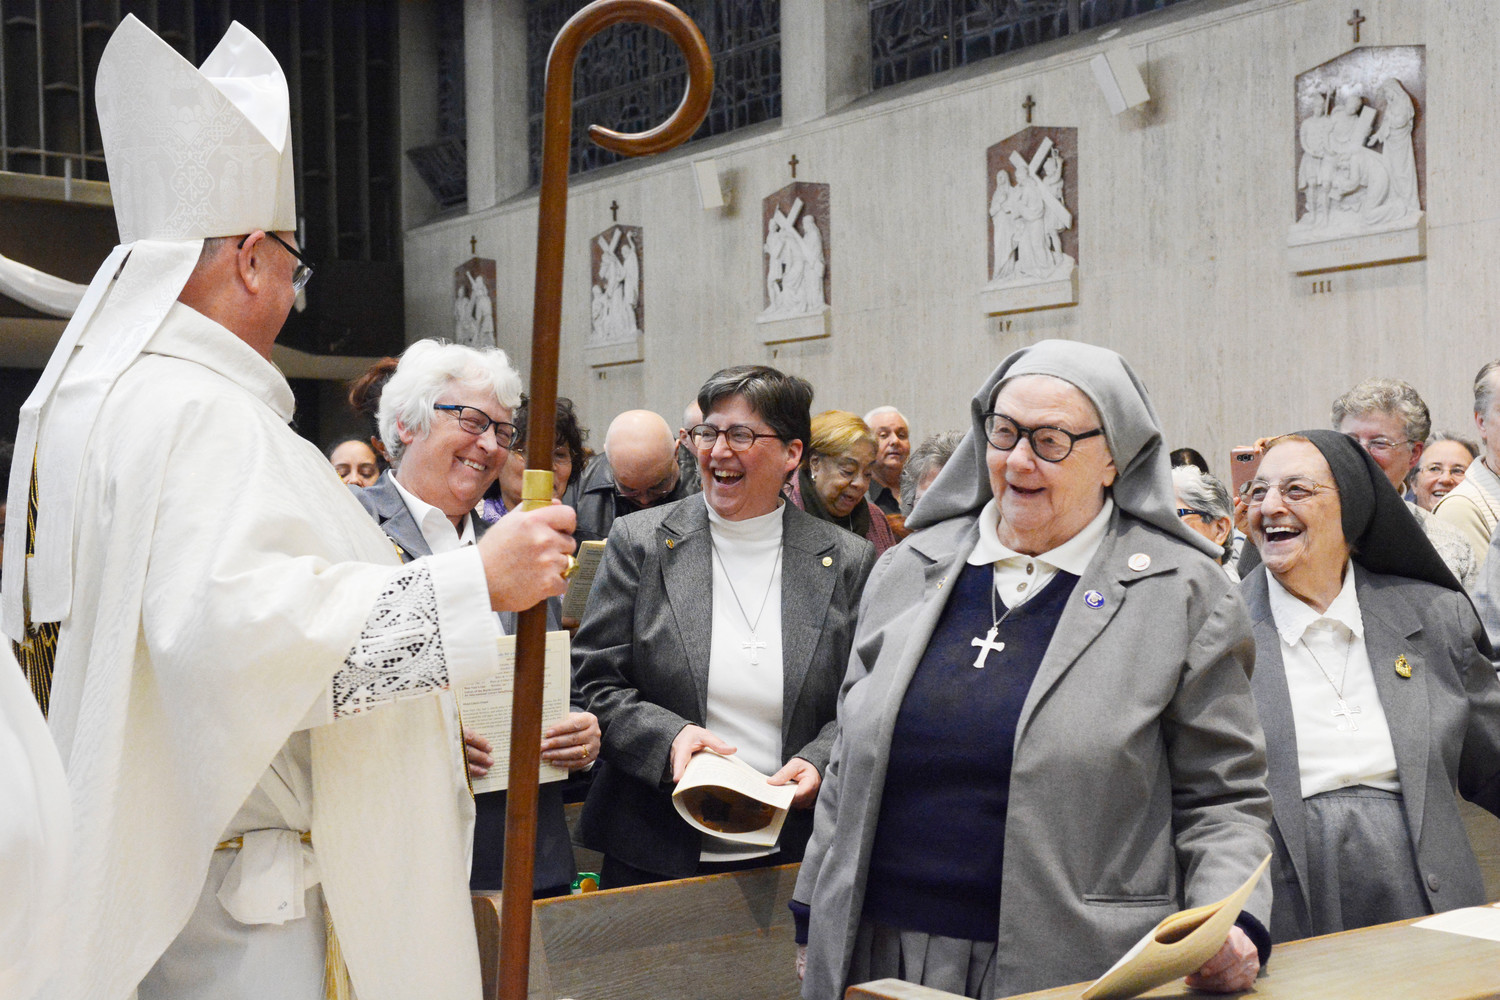 Cardinal Dolan speaks with Missionary Sisters of the Sacred Heart of Jesus, including Sister Barbara Louise Staley, M.S.C., general superior, second row left, at St. Frances Cabrini Shrine in Manhattan Dec. 16.